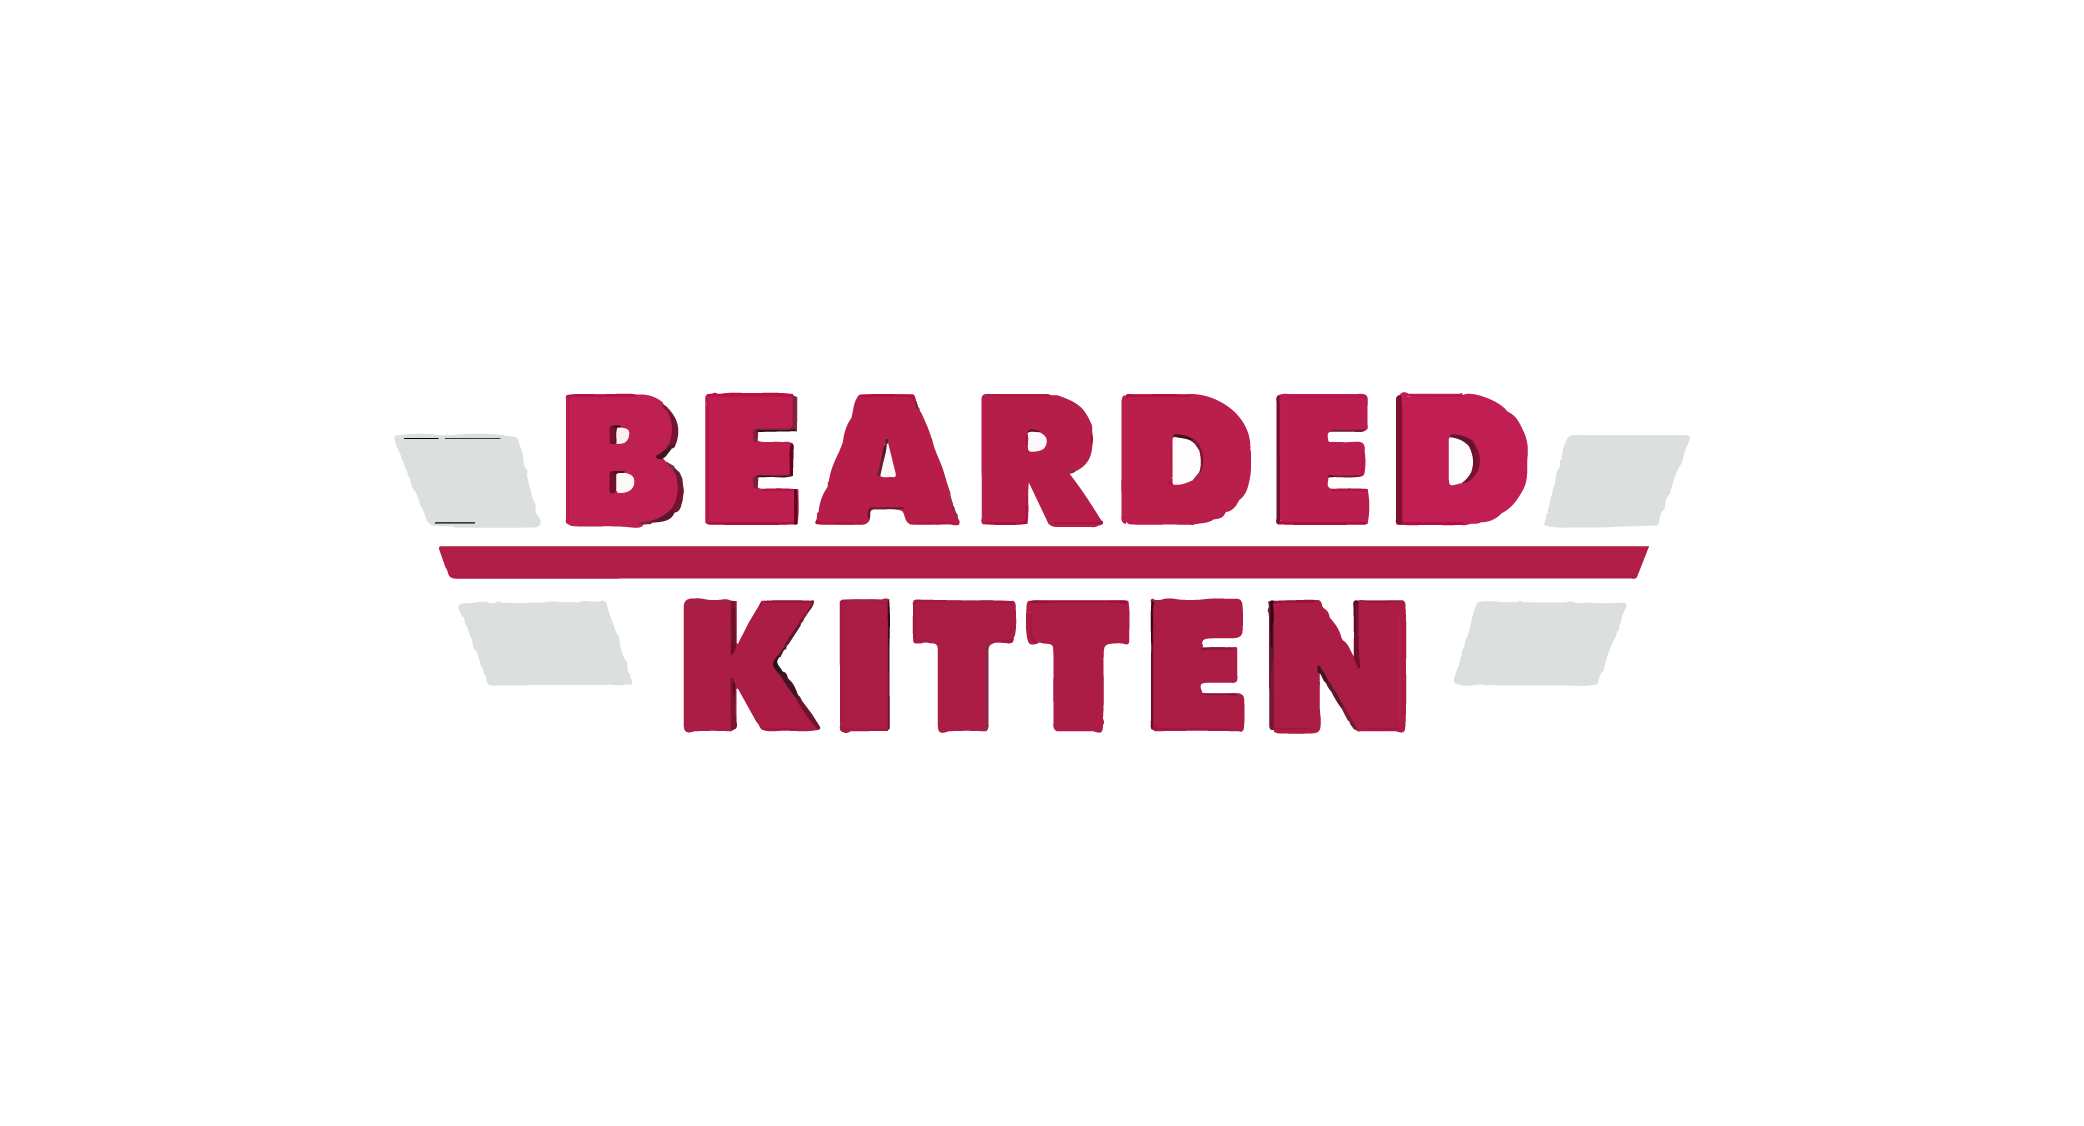 bearded kitten-01